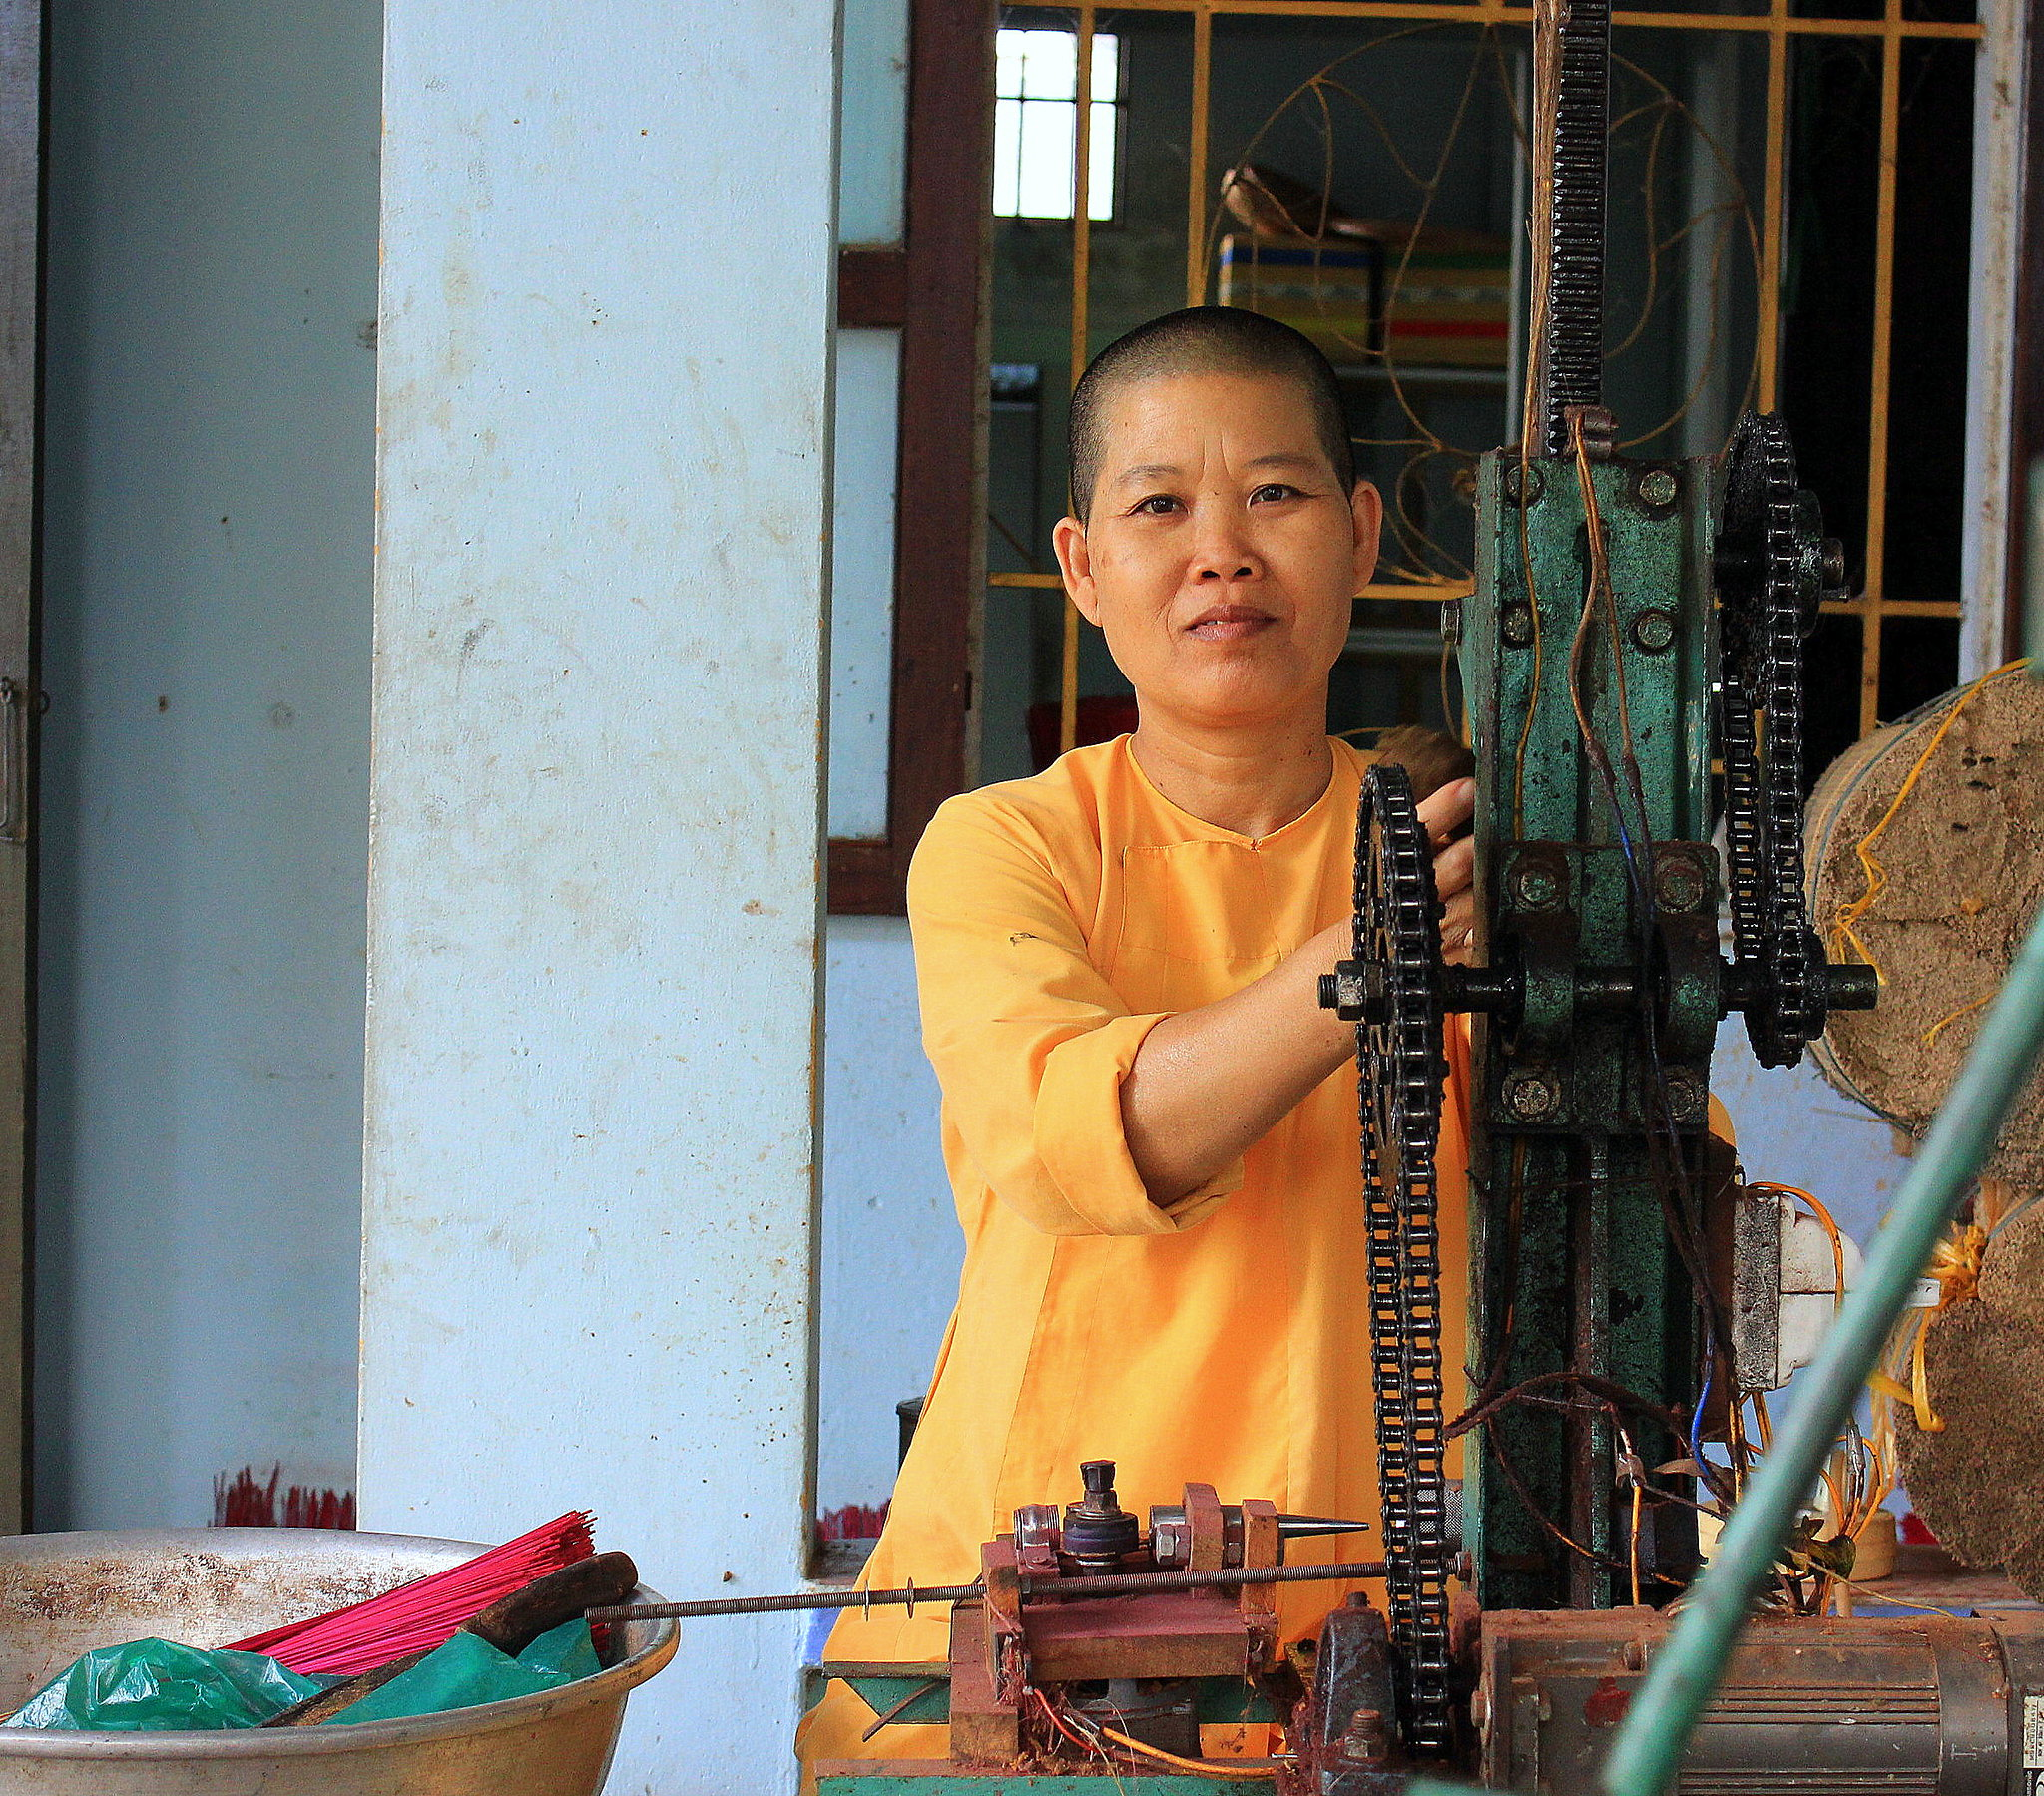 Central Highland of Vietnam has small monasteries run by women